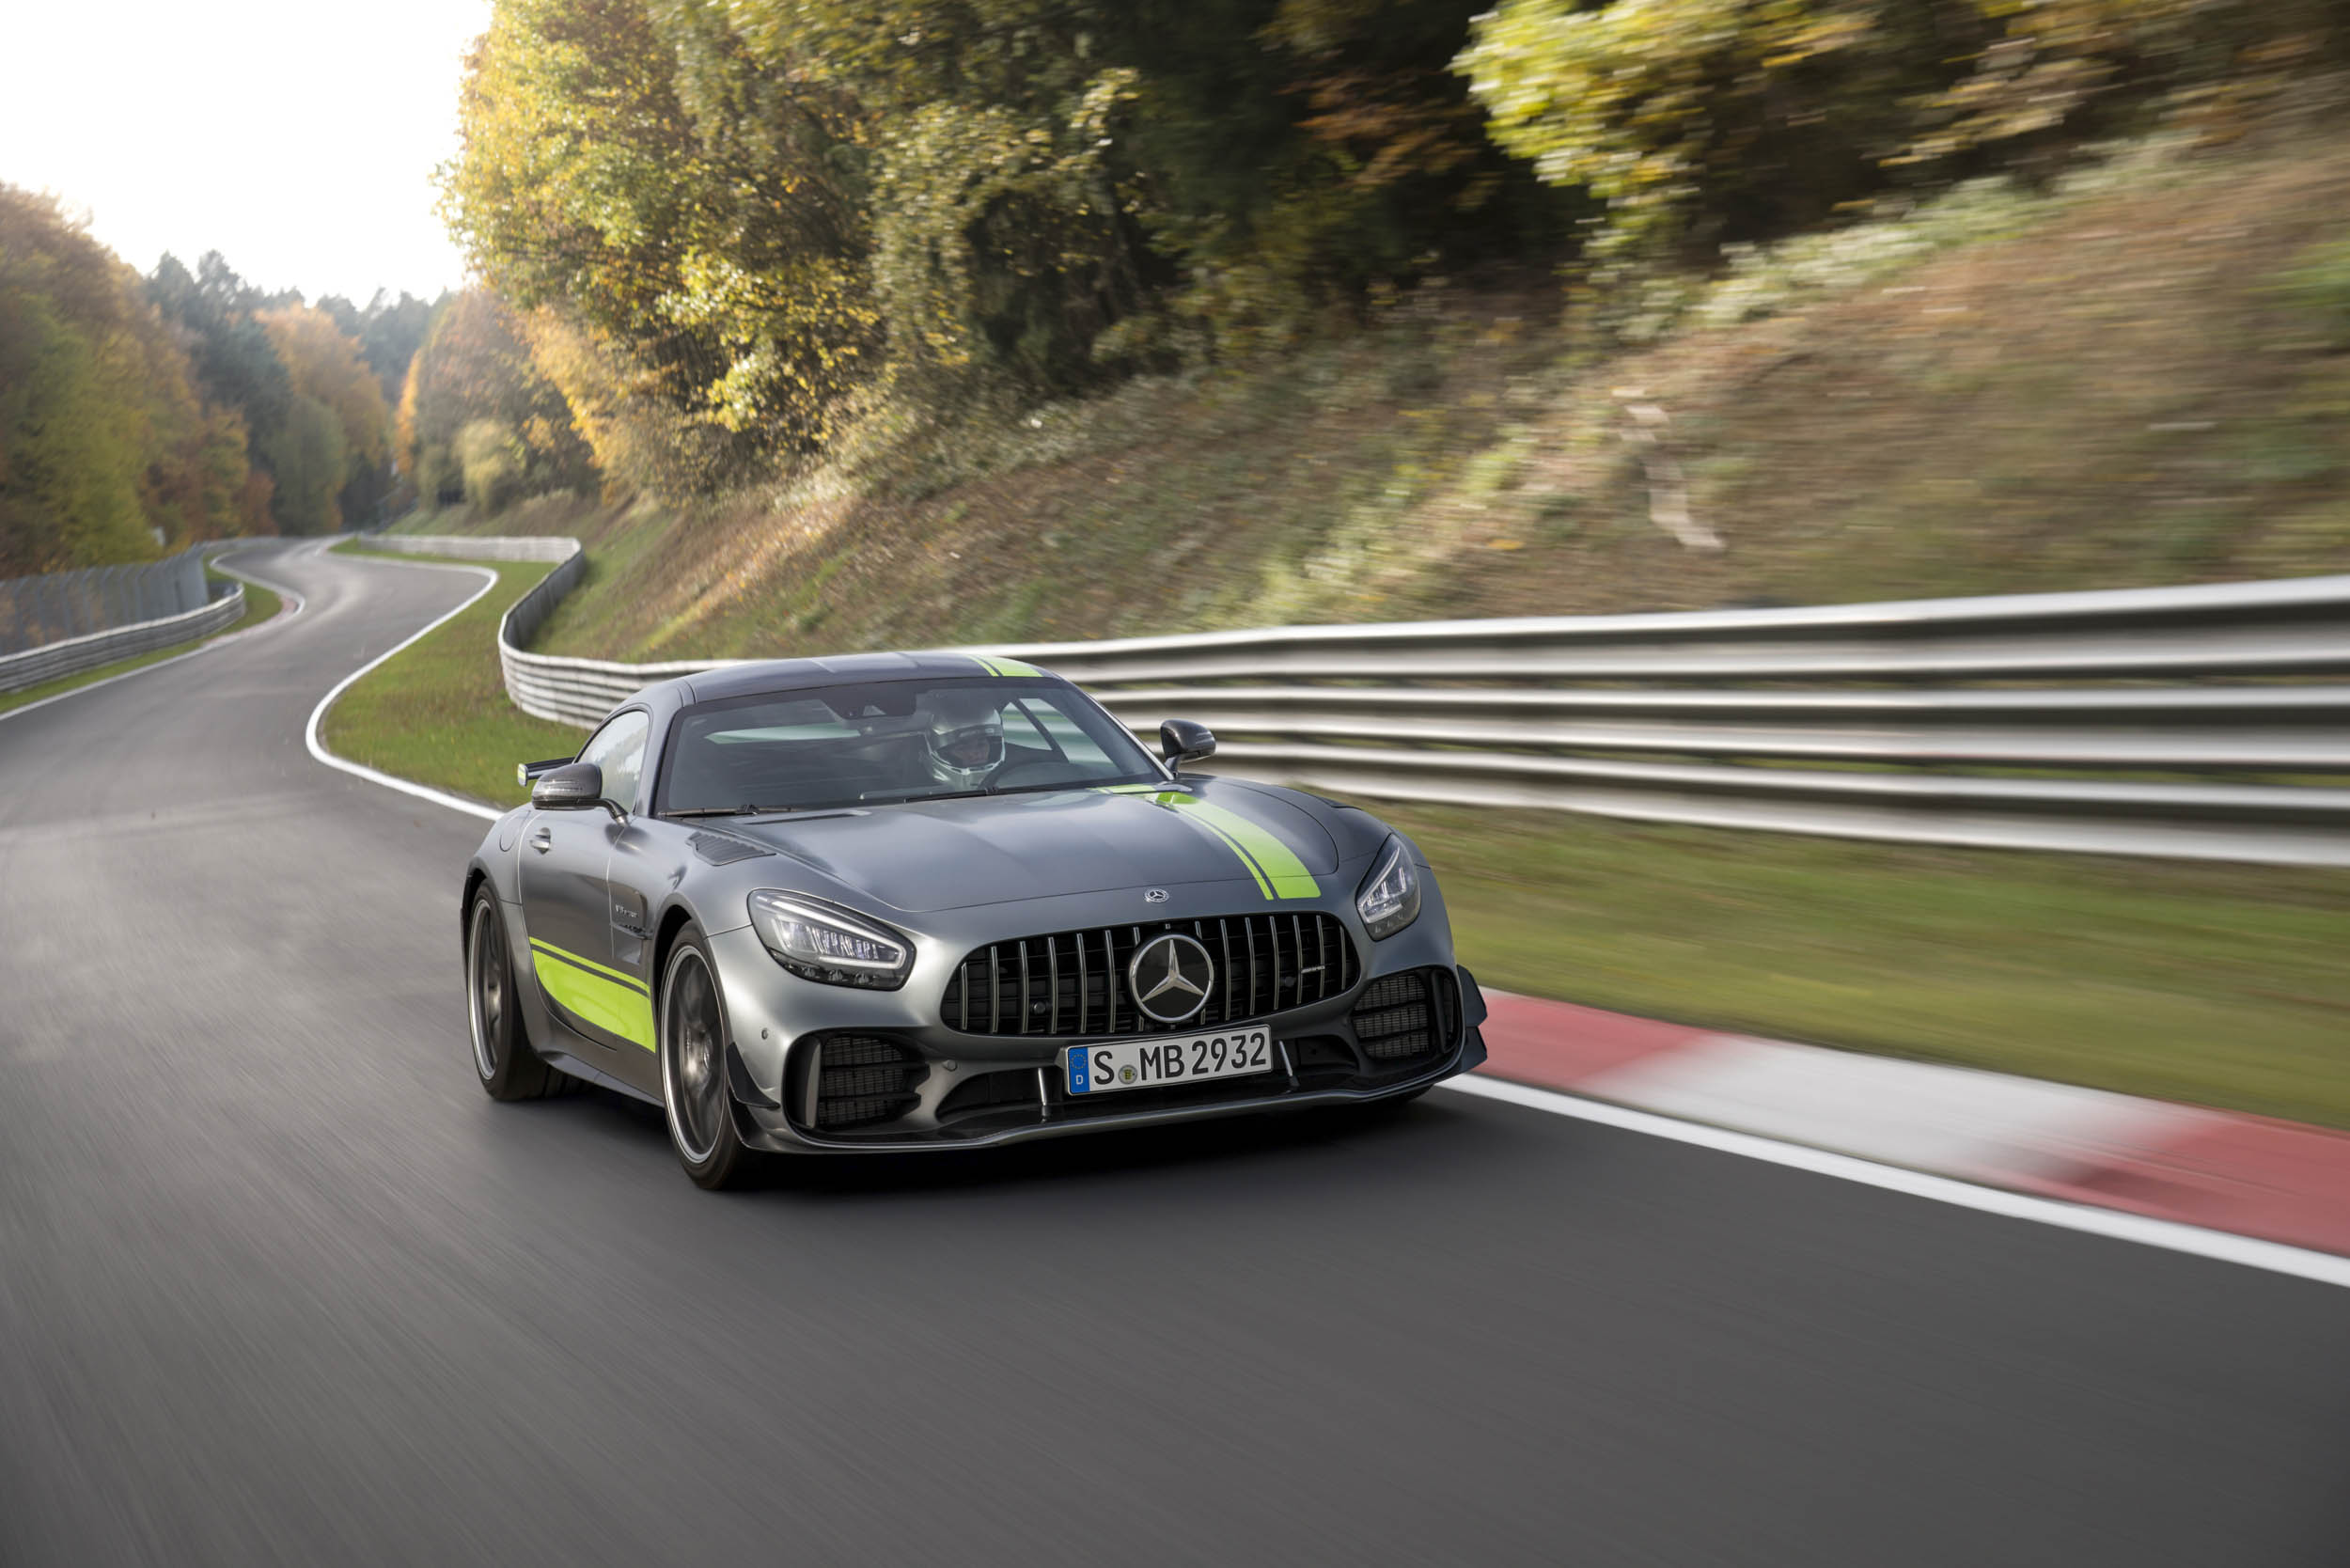 Mercedes-AMG GT R Pro on the track